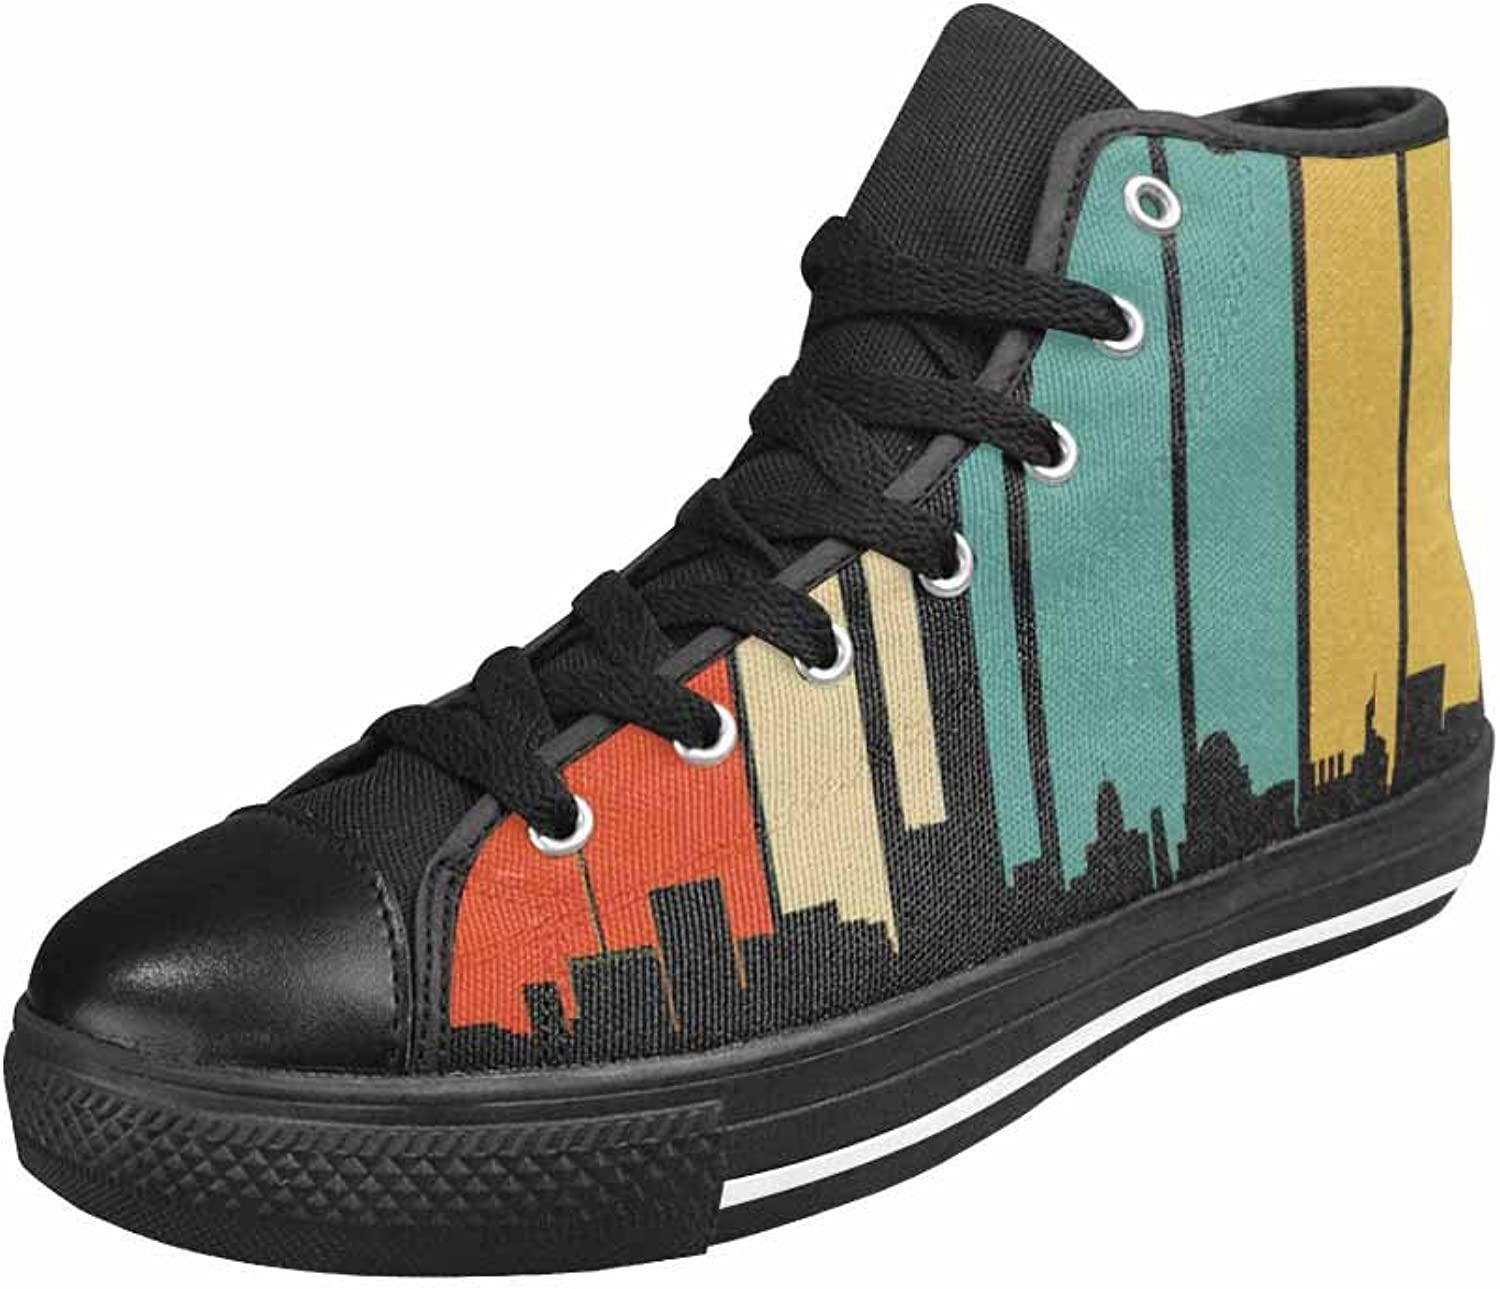 Qchengshix Women's Low Top Classic Canvas Fashion Sneaker Basketball Tennis Athletic shoesRetro Baltimore MD Skyline